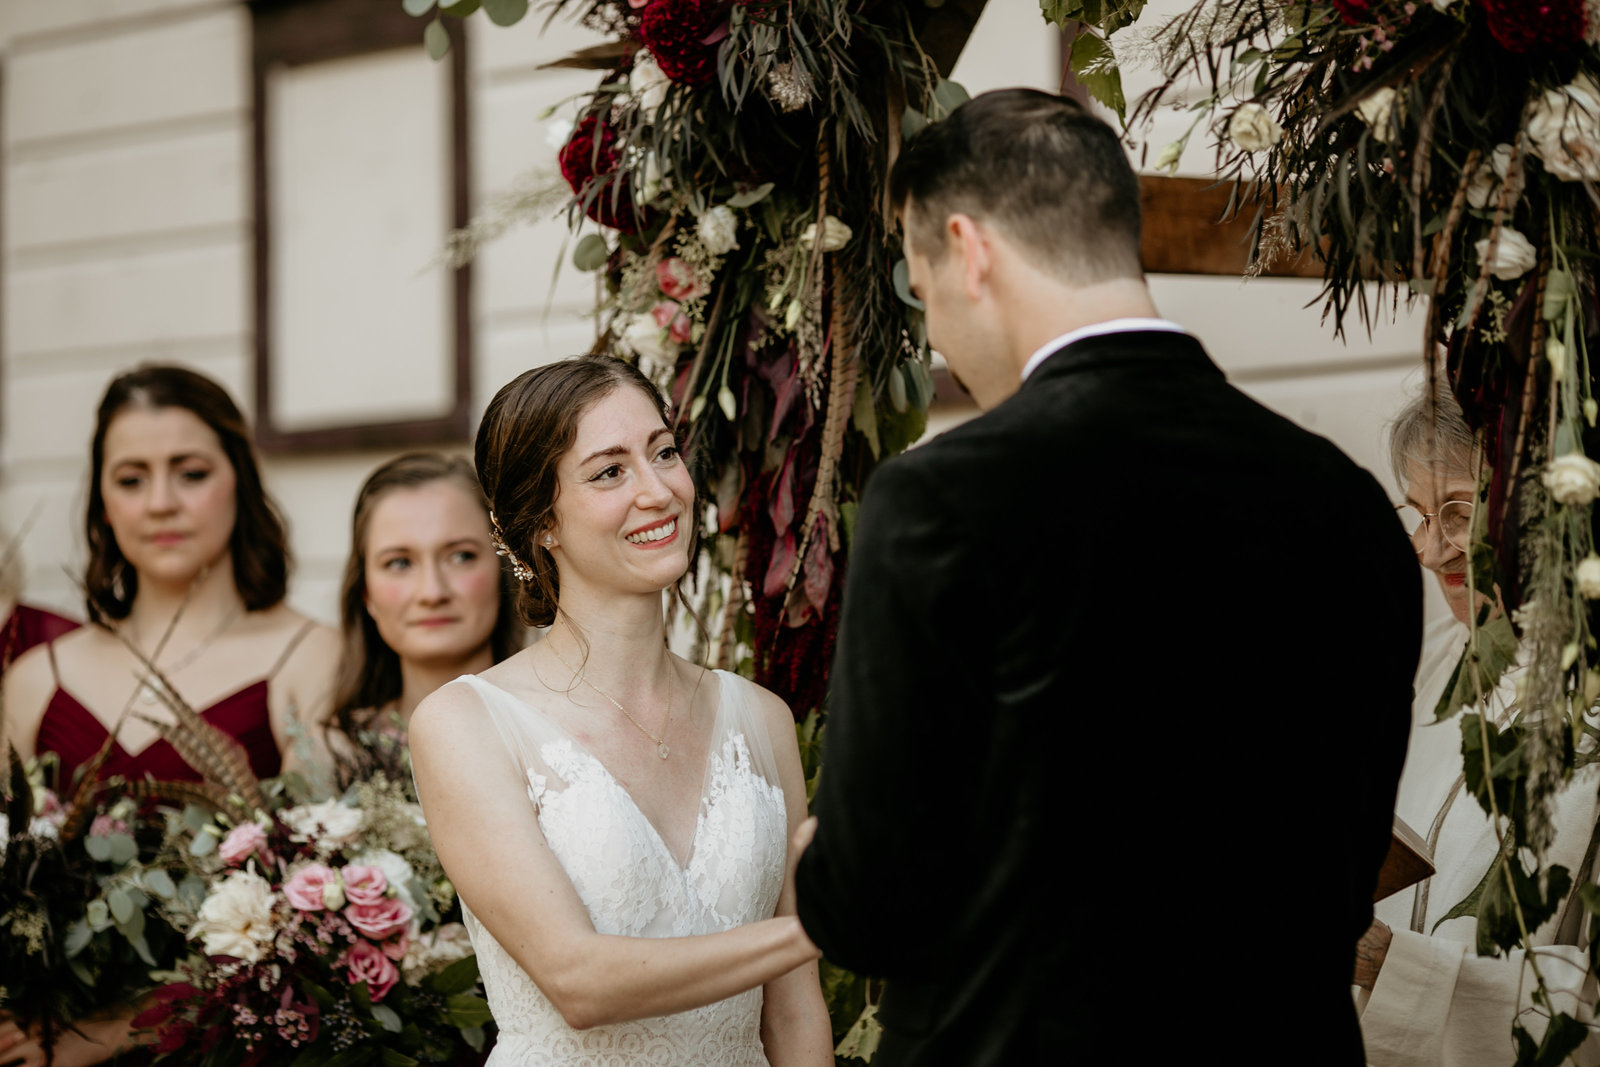 Bride and groom exchange vows during their ceremony in Catskill, New York.